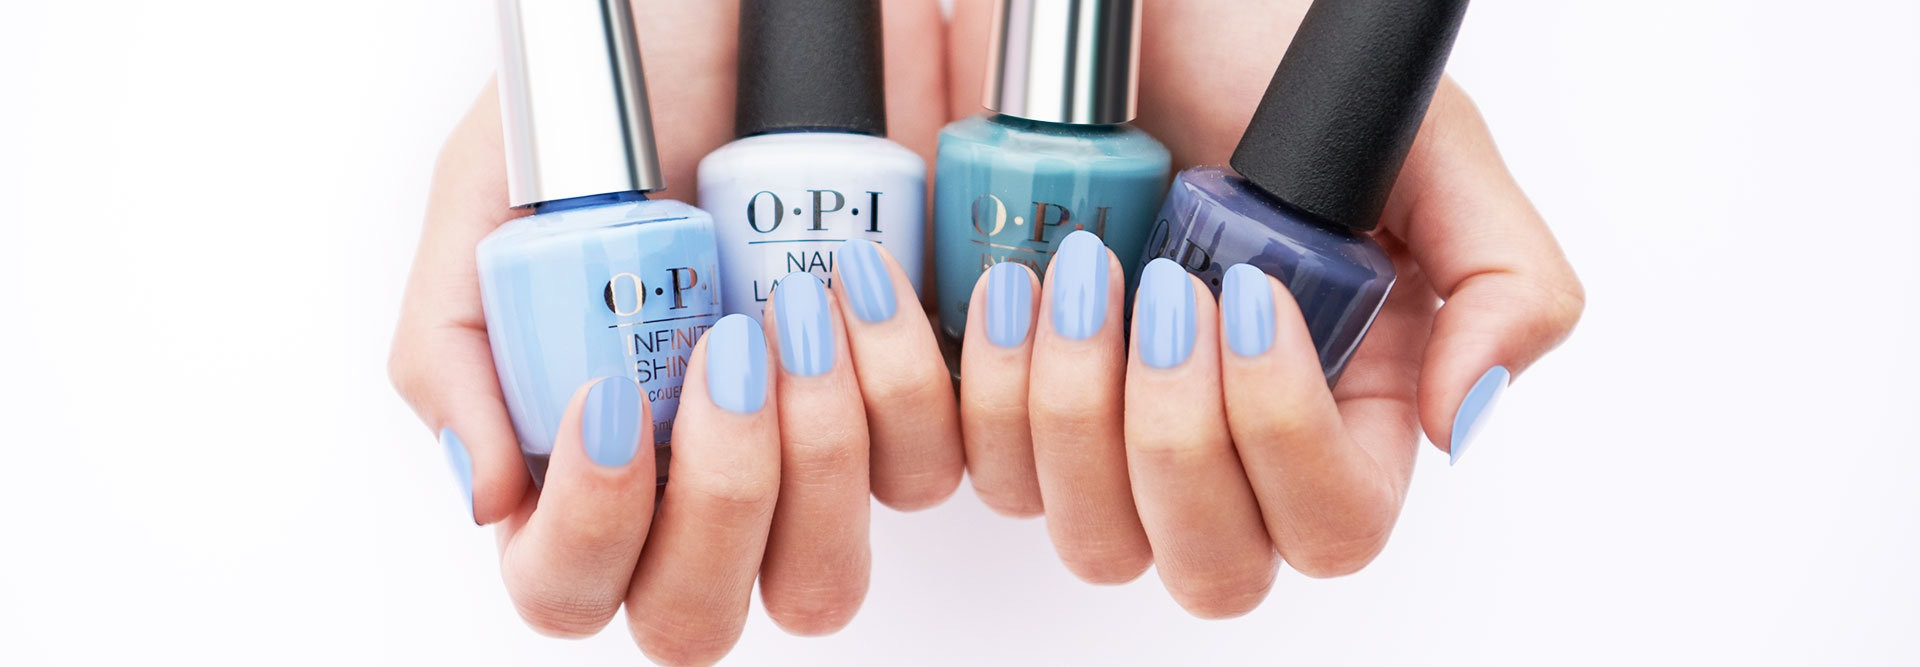 The OPI sale is taking a break, check out what's new in!